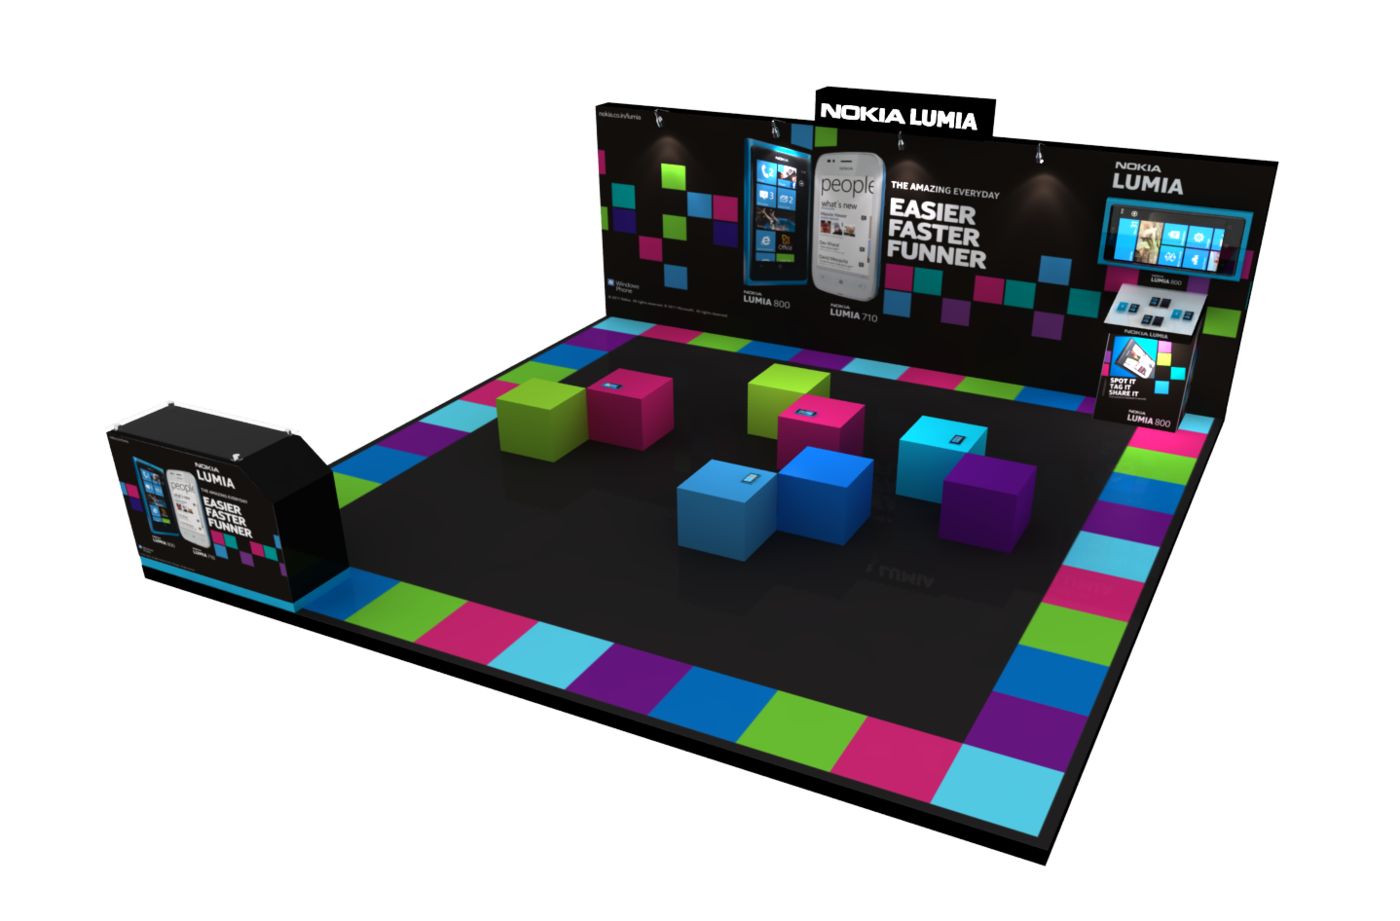 Exhibition Stall Png : Exhibition stall design by prashant mahangare at